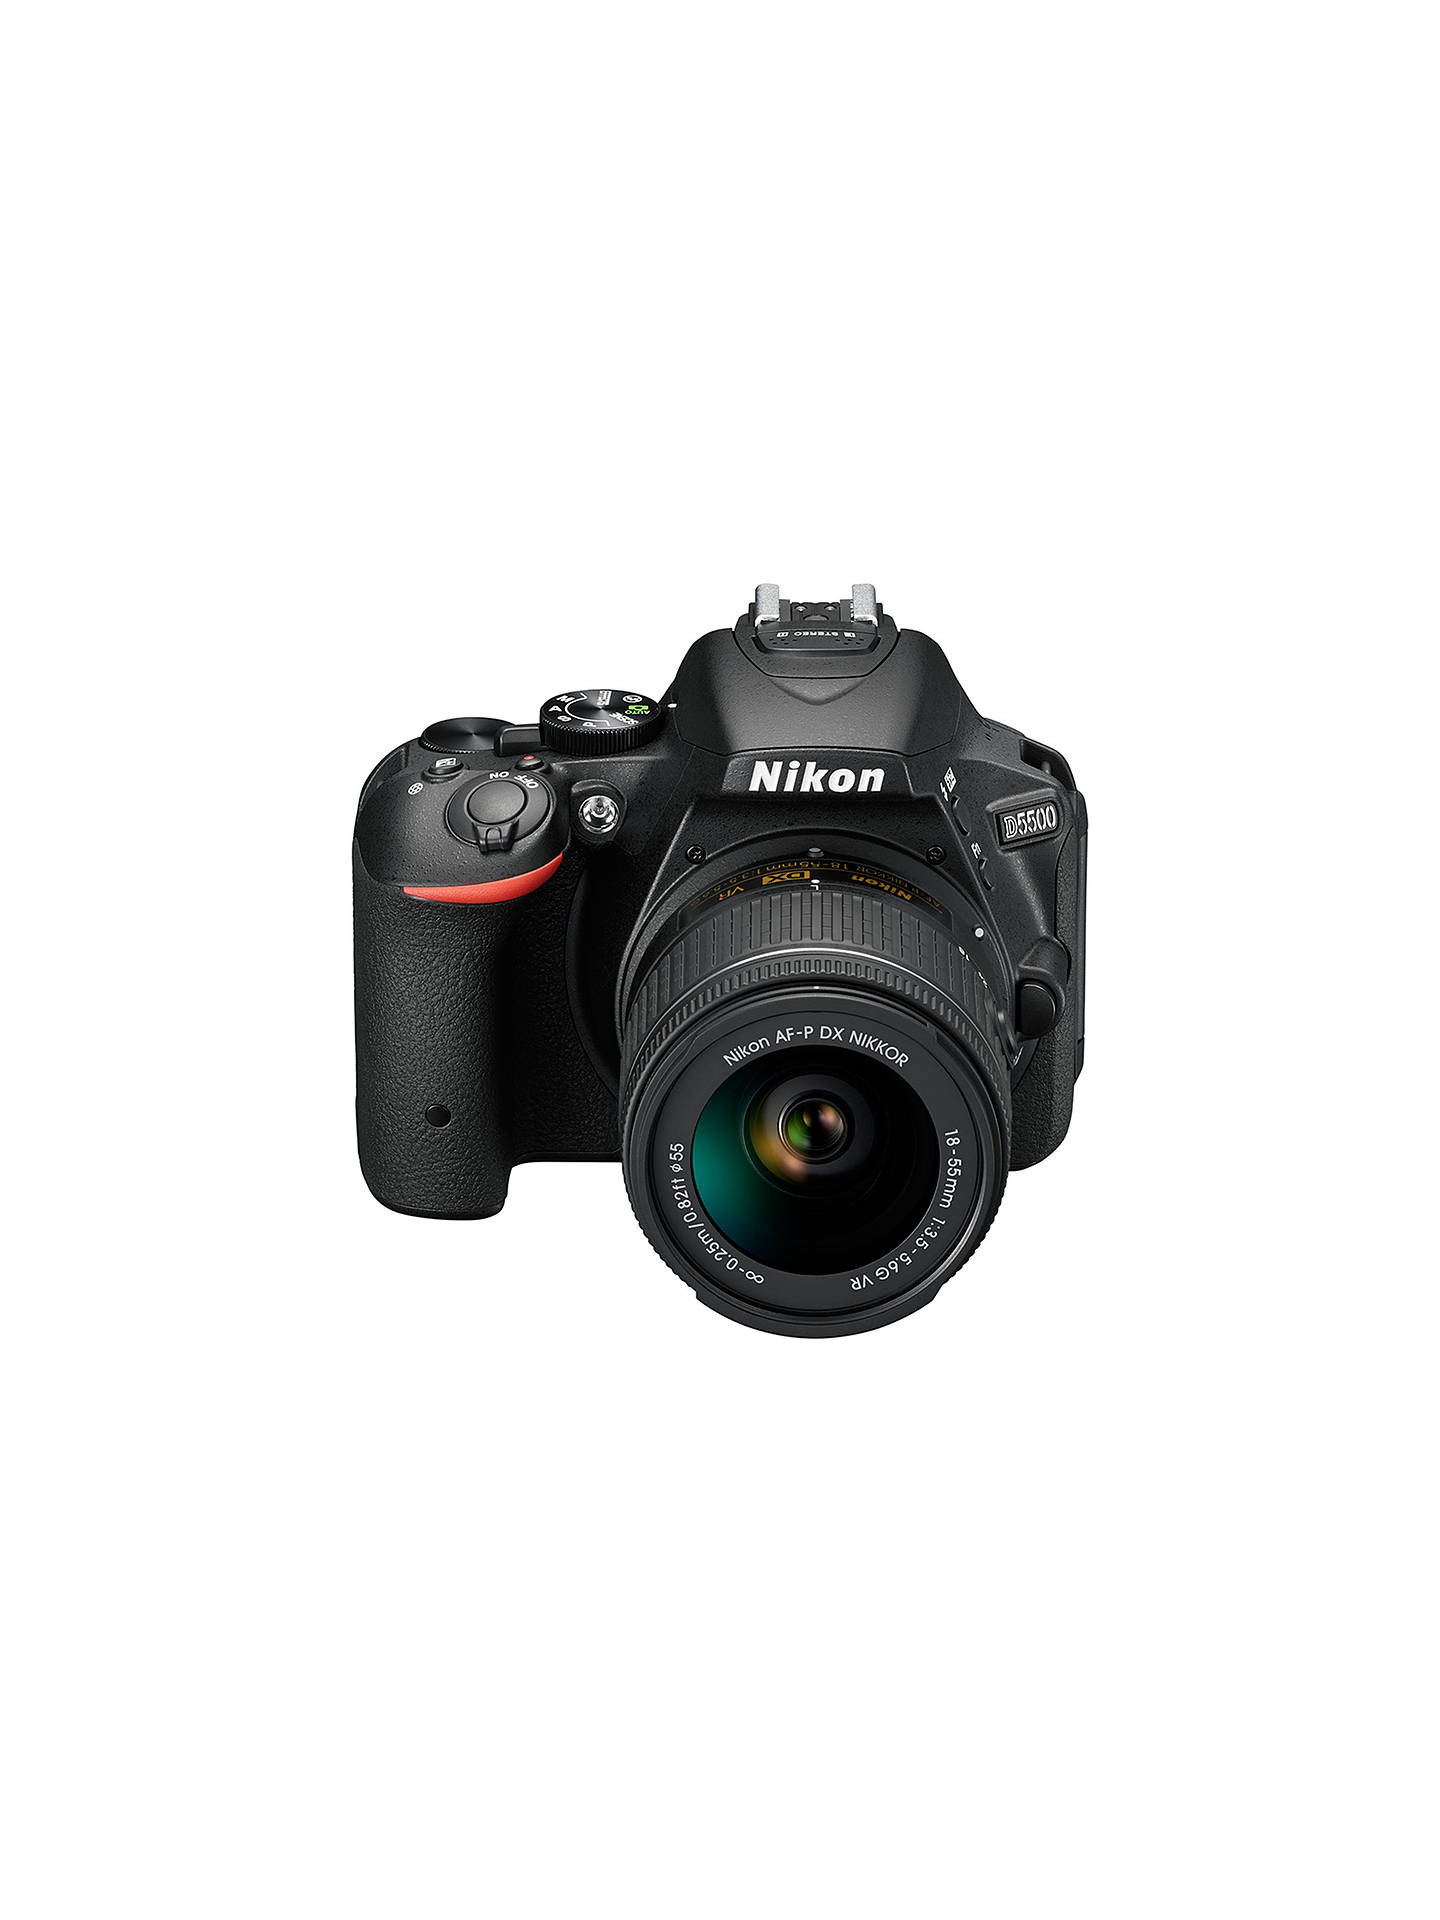 "Buy Nikon D5500 Digital SLR Camera, HD 1080p, 24.2MP, Wi-Fi, 3.2"" Vari-angle LCD Screen With 18-55MM VR Lens Online at johnlewis.com"